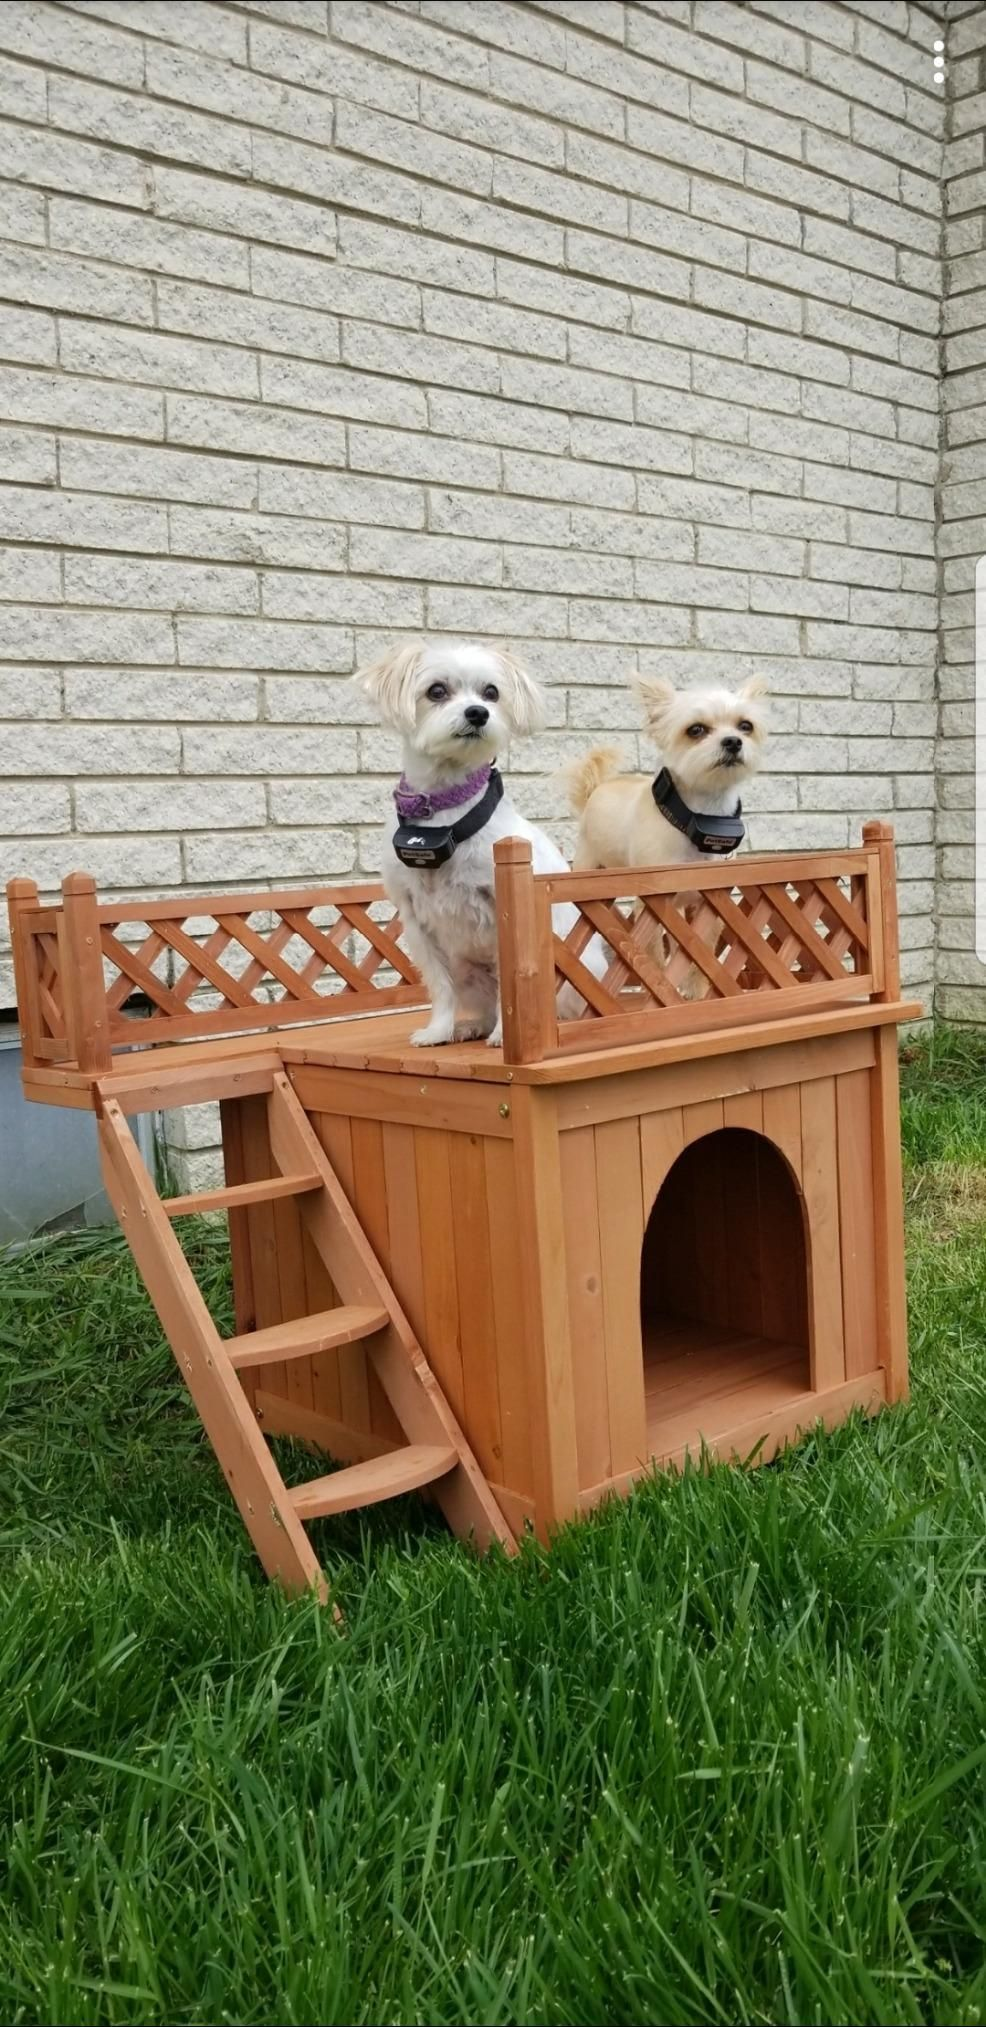 This Dog House Is Designed For Smaller Pets Raised Panel Floor Keeps Your Dog Dry Cool Dog Houses Dog House Best Dogs